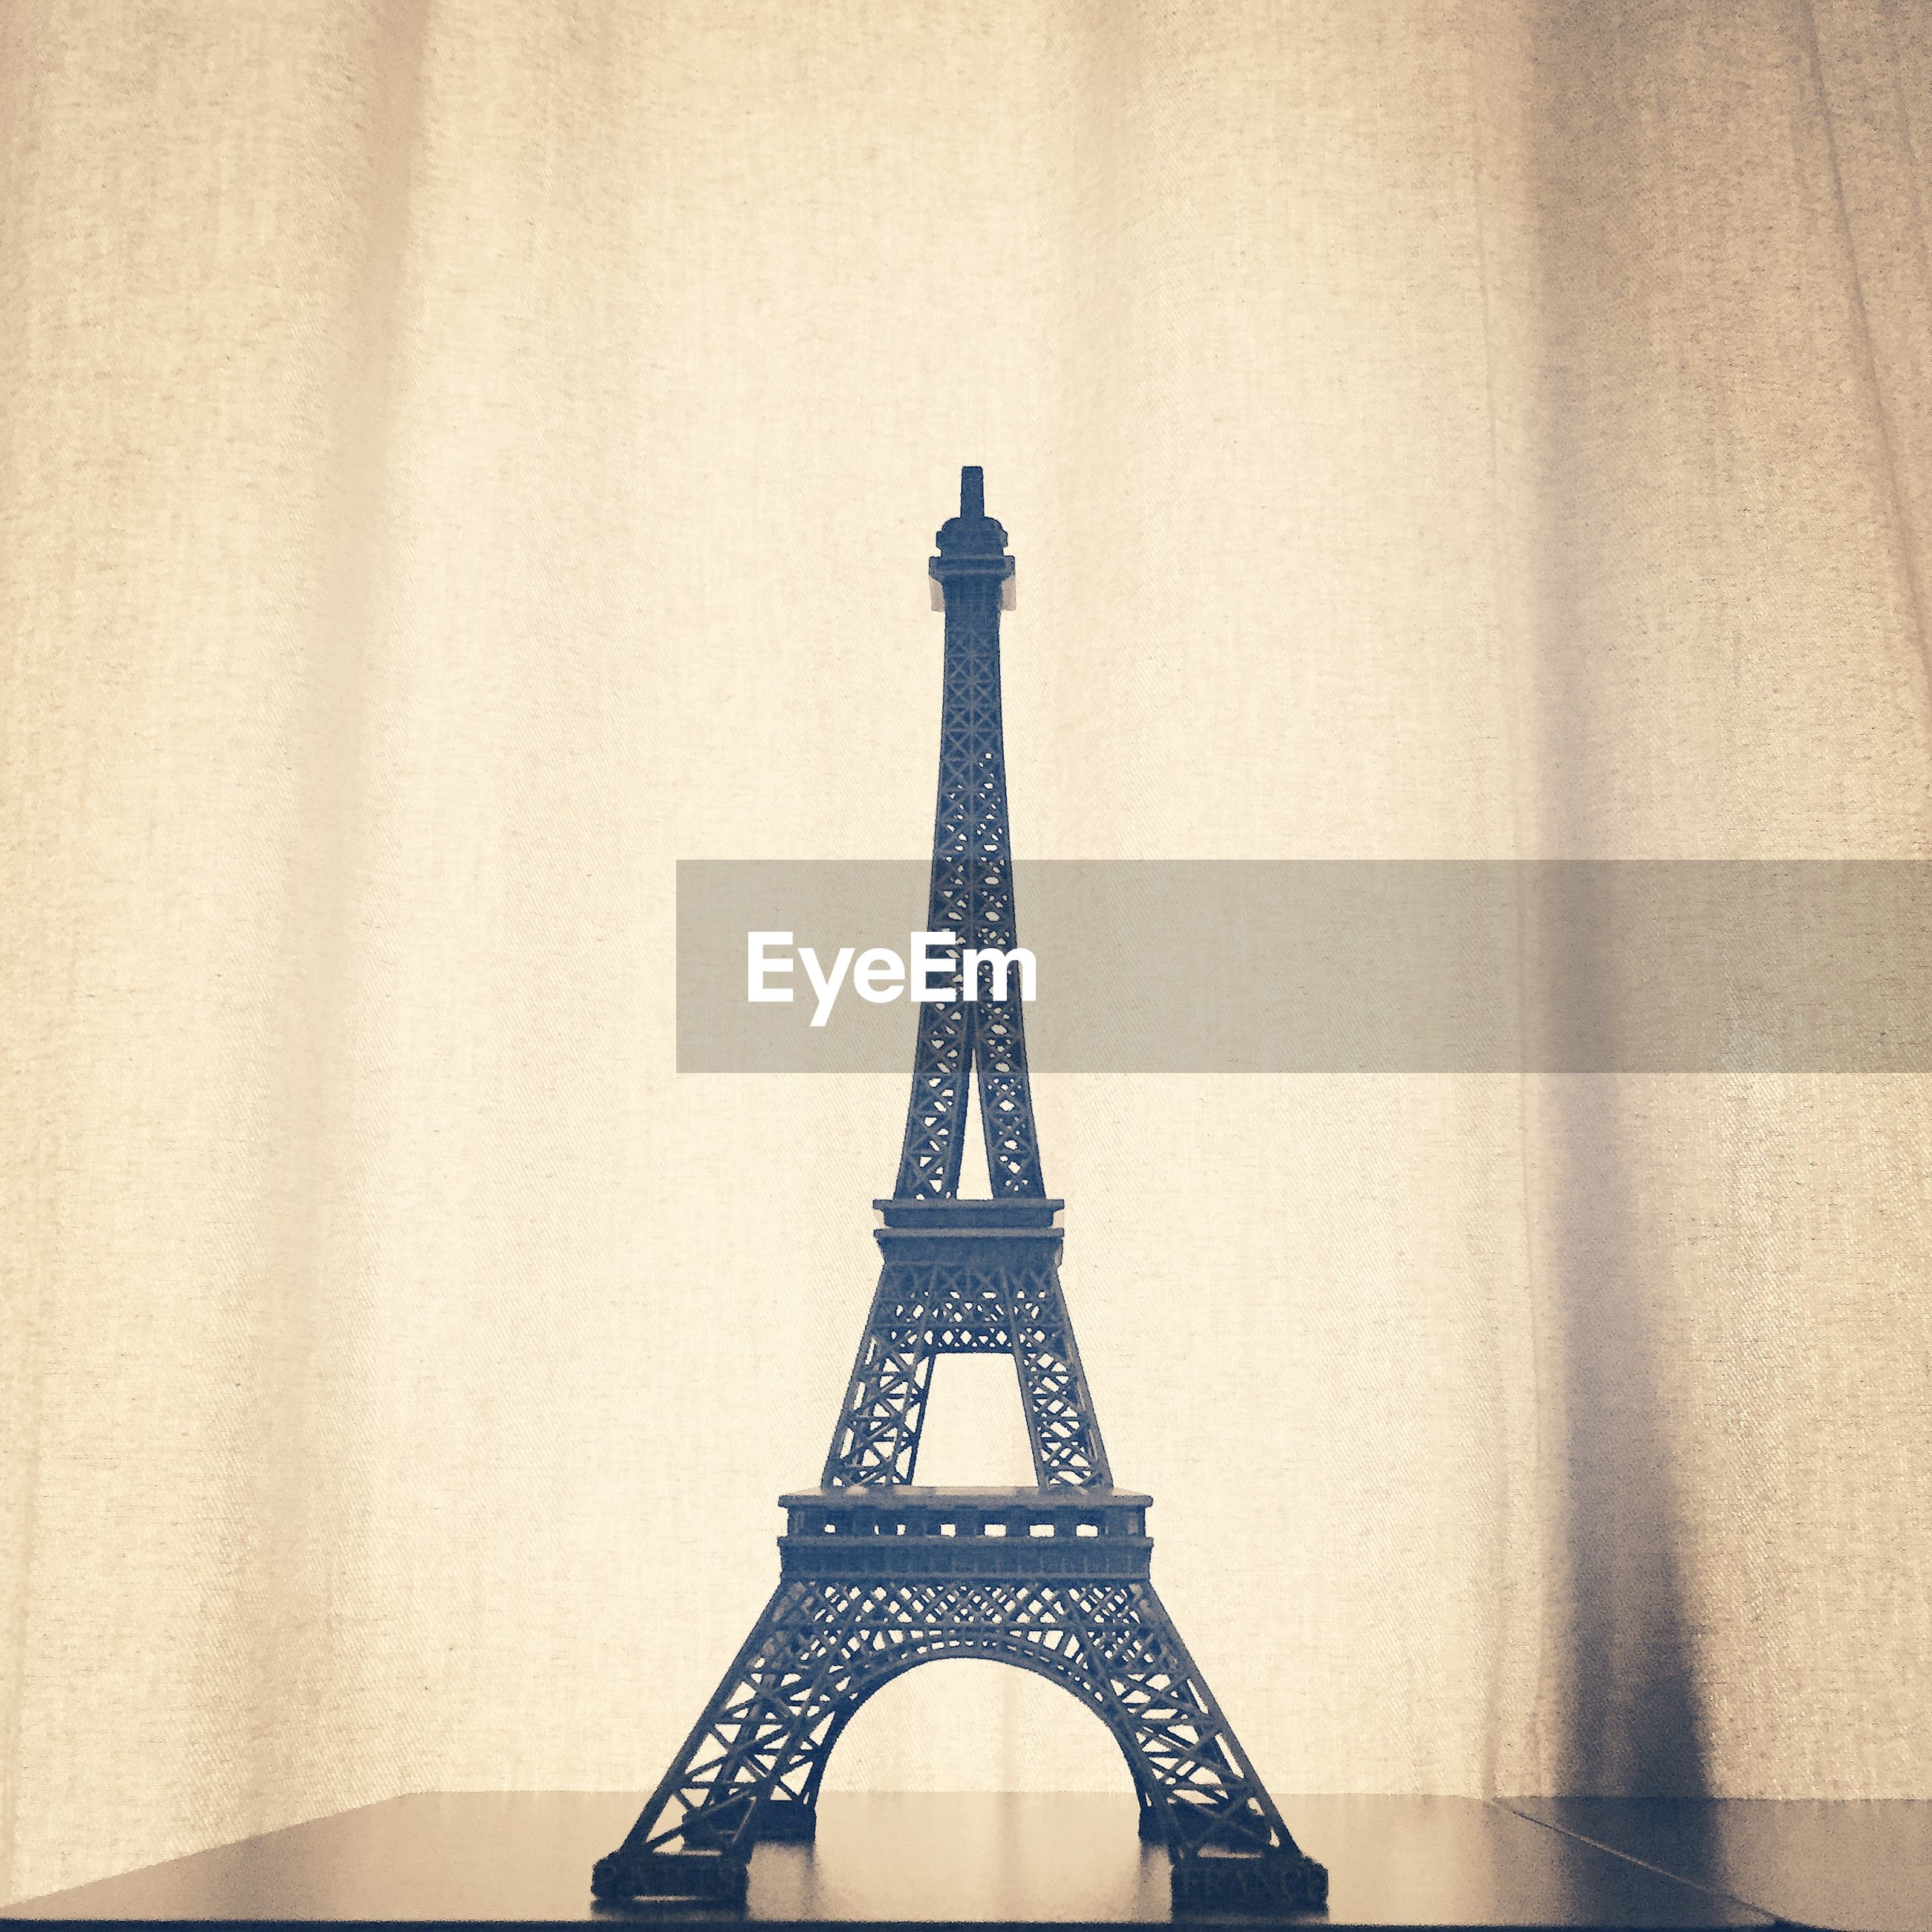 architecture, built structure, eiffel tower, metal, tower, low angle view, international landmark, famous place, tall - high, travel destinations, culture, clear sky, capital cities, metallic, building exterior, sky, tourism, travel, architectural feature, no people